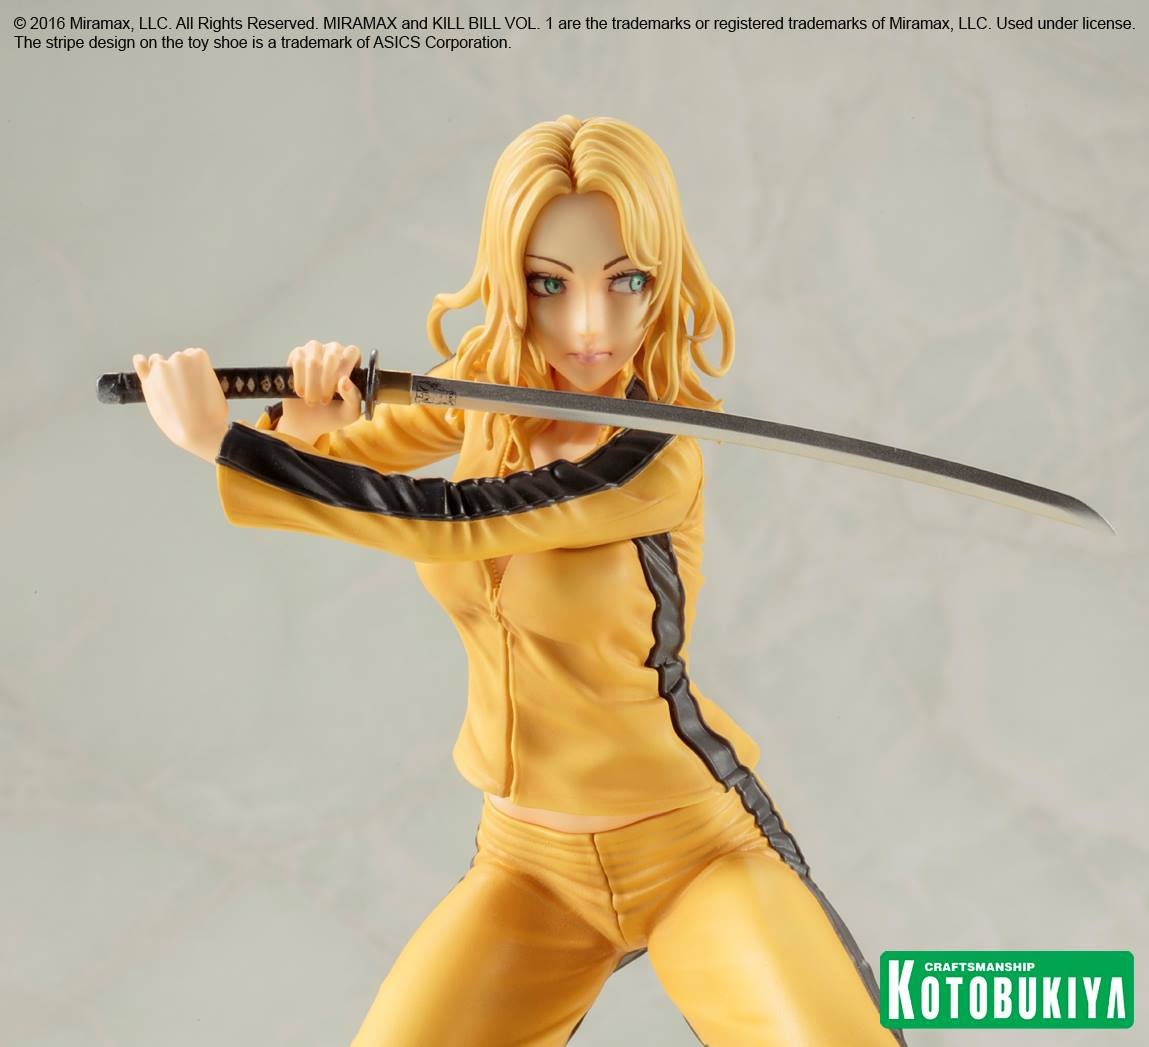 kill-bill-the-bride-bishouoj-statue-kotobukiya-5